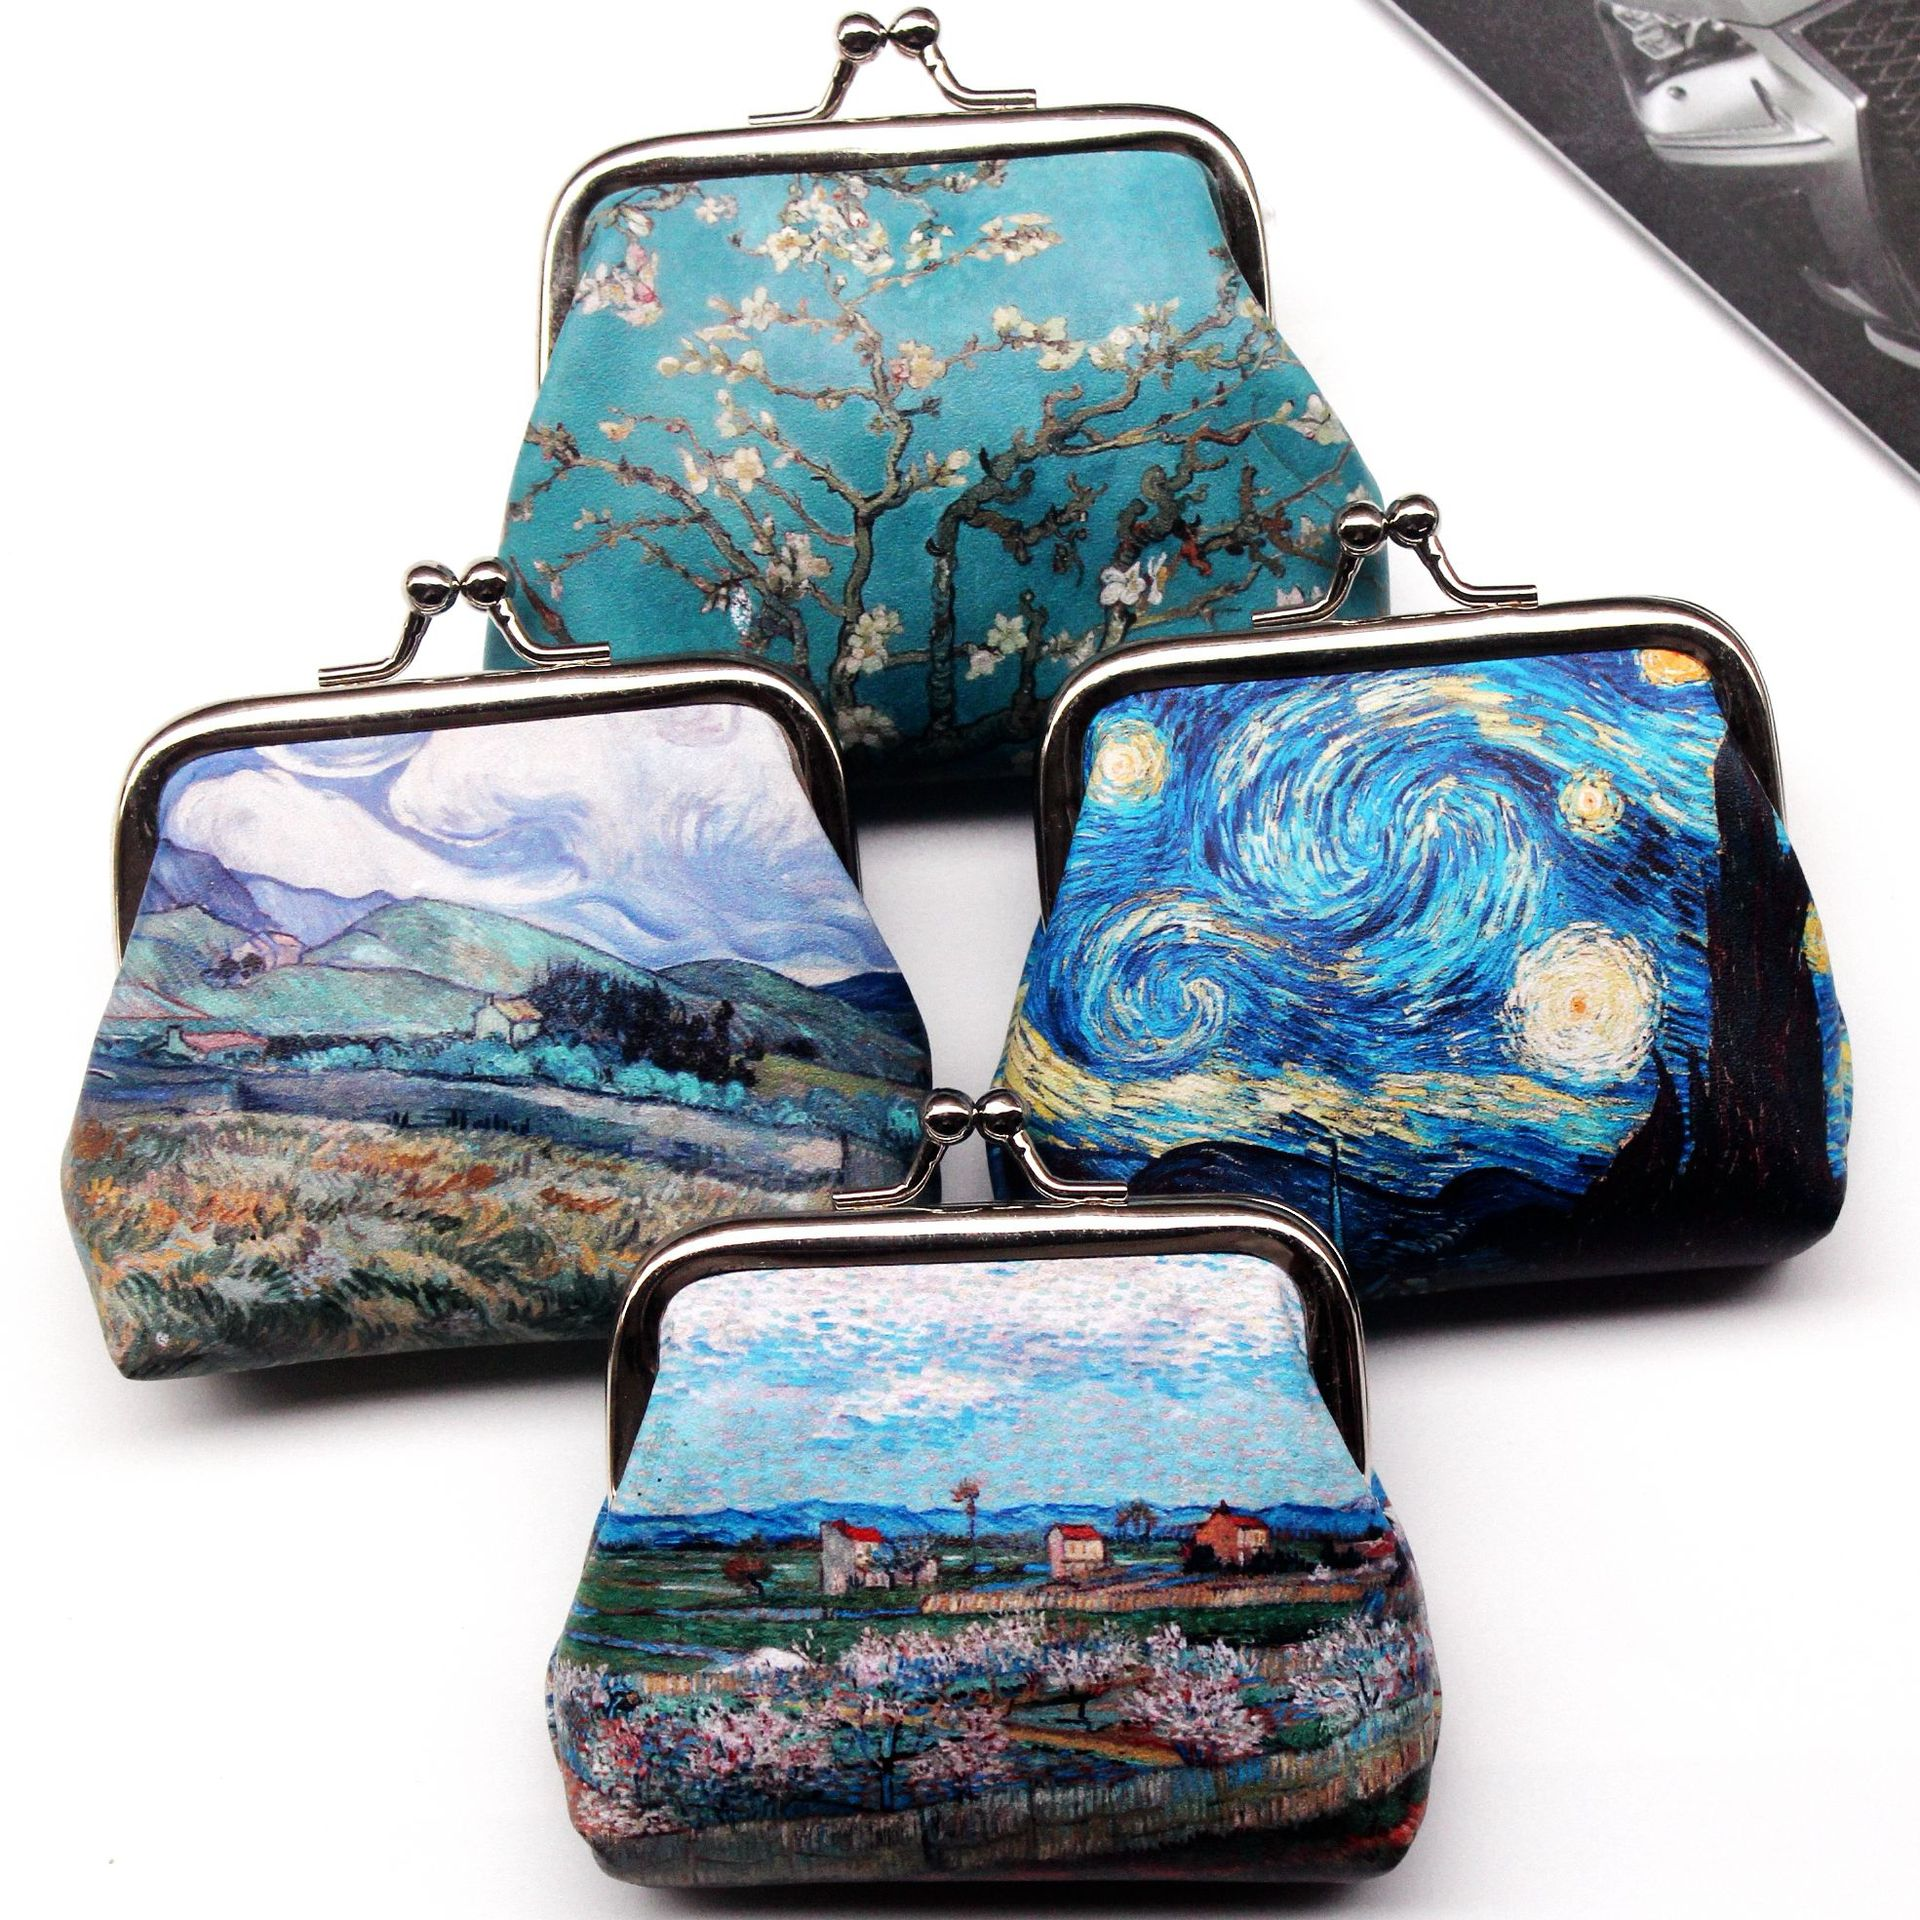 Vintage Coin Purse Wallet Women Famous Oil Painting Small Wallet Hasp Creative Clutch Bag Good Gift Women's Mini Purses